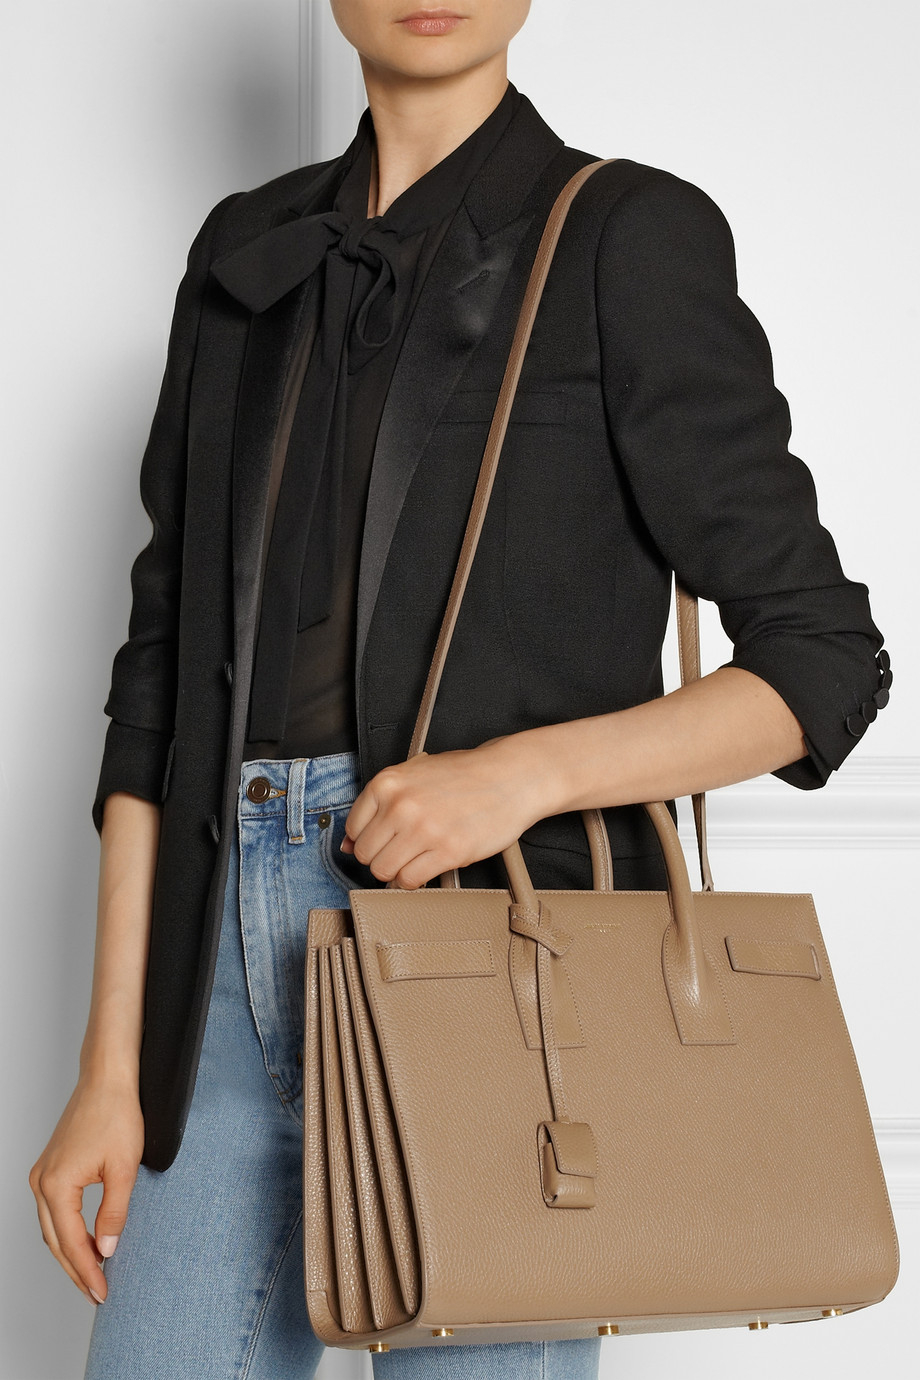 Saint Laurent Sac De Jour Small Leather Tote In Brown Lyst